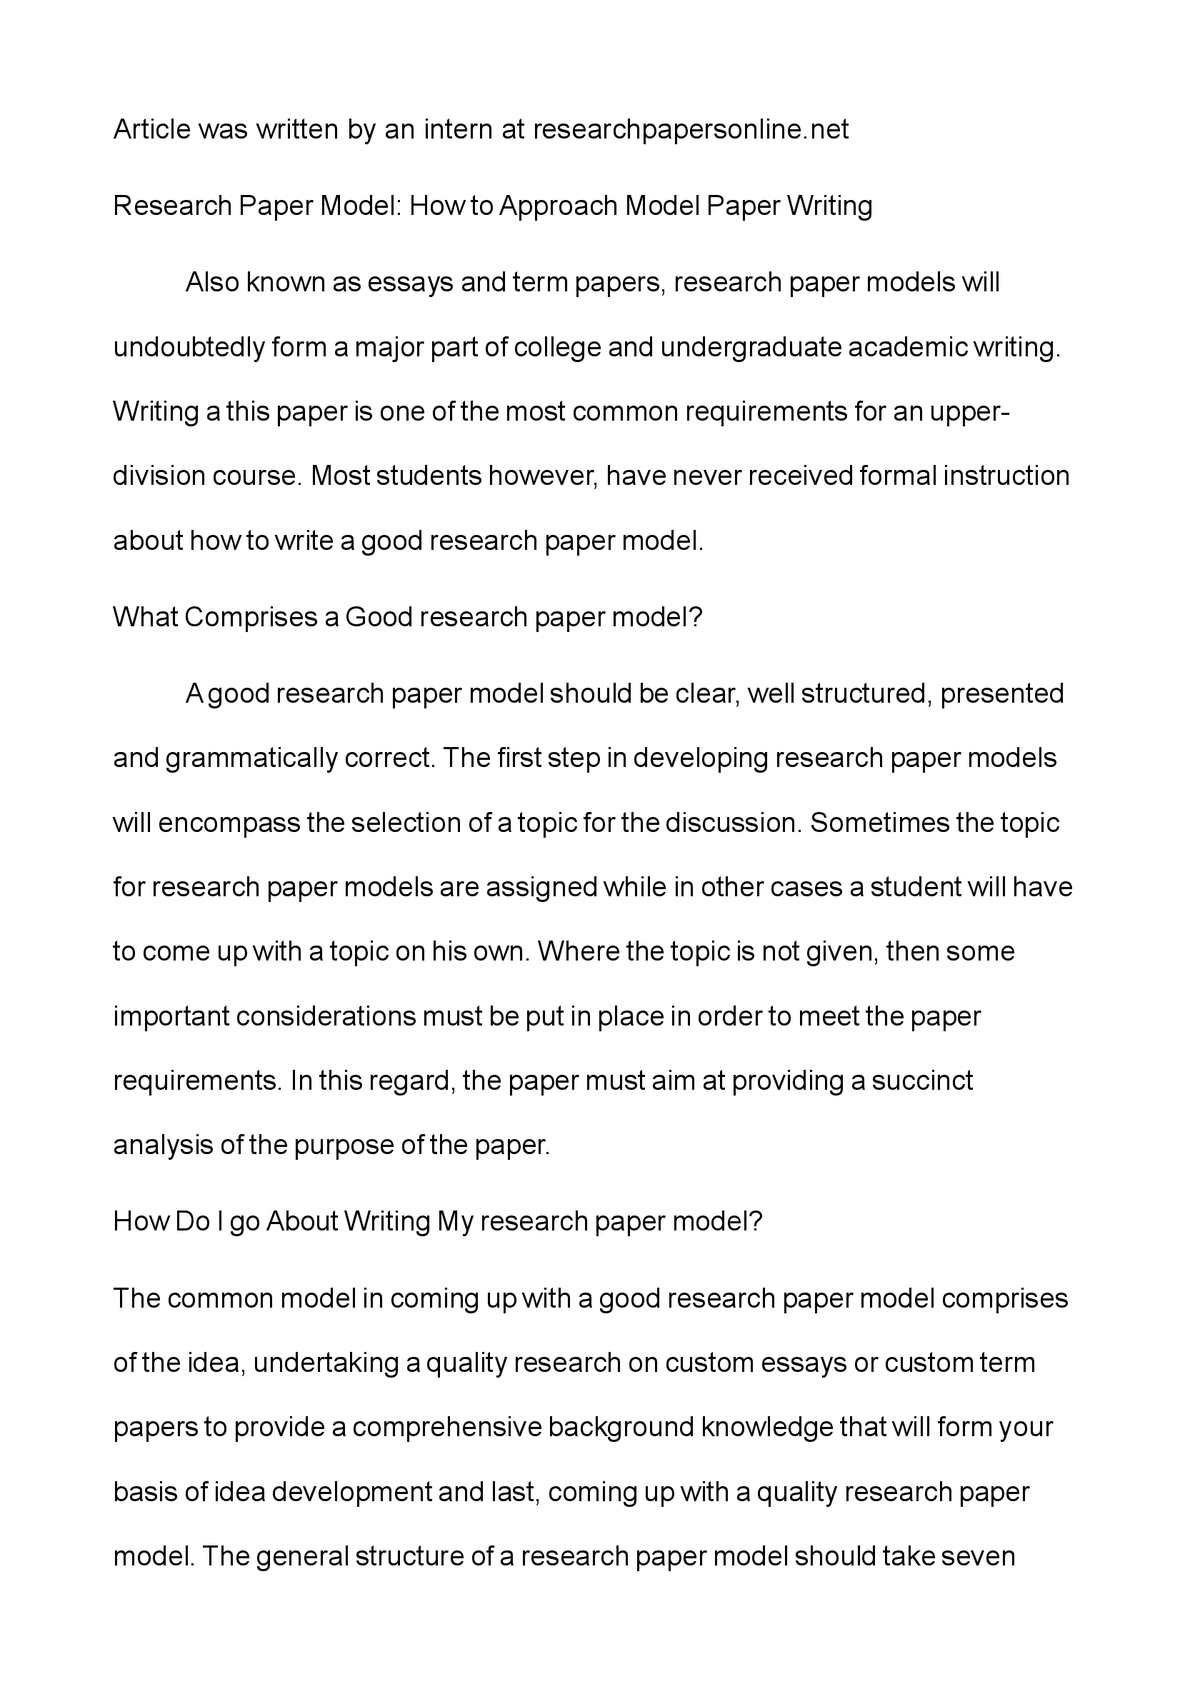 012 Research Paper P1 Correct Order Of Wonderful A Sequence Steps For Writing Full